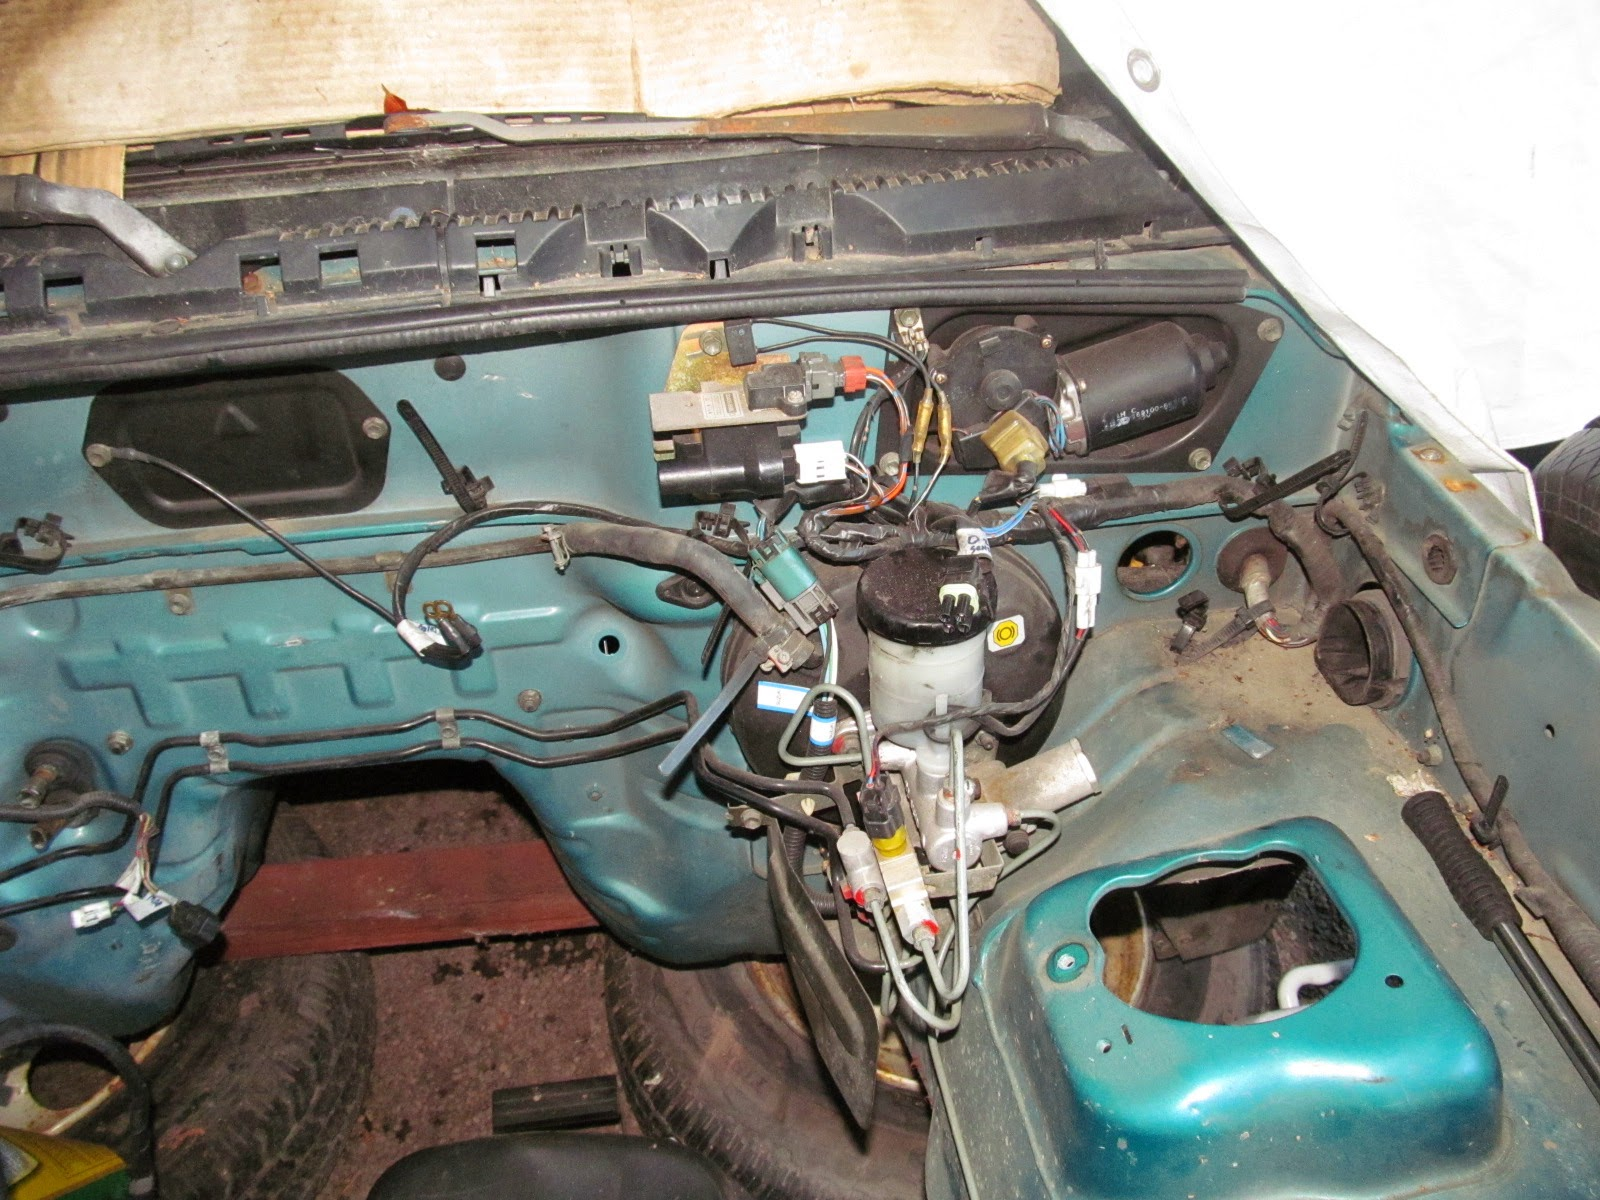 Mikes Projects 2014 1998 Suzuki Sidekick Power Window Fuse Box The Main Harness Runs Across Inside Of Firewall And Connects To Some Mounted Items A Few Grounds It Also Between Heater